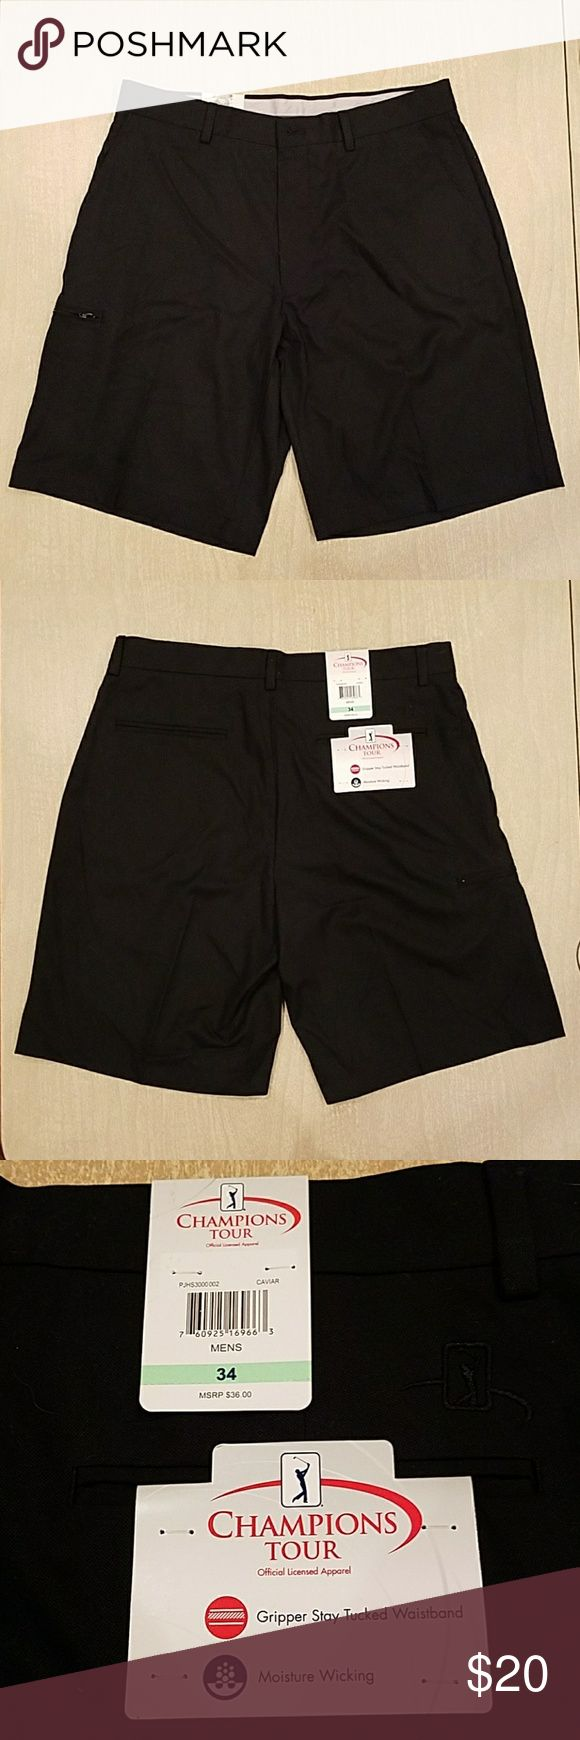 """NWT CHAMPIONS Tour PGA Golf Shorts Black Size 34 Champions Tour PGA Golf Shorts  Size 34 Black """"Caviar"""" Excellent Brand New With Tags Gripper Stay Tucked Waistband Moisture Wicking Official Licensed Apparel authentic Two side pockets, one leg side pocket with zipper and two back pockets Champion Shorts Flat Front"""